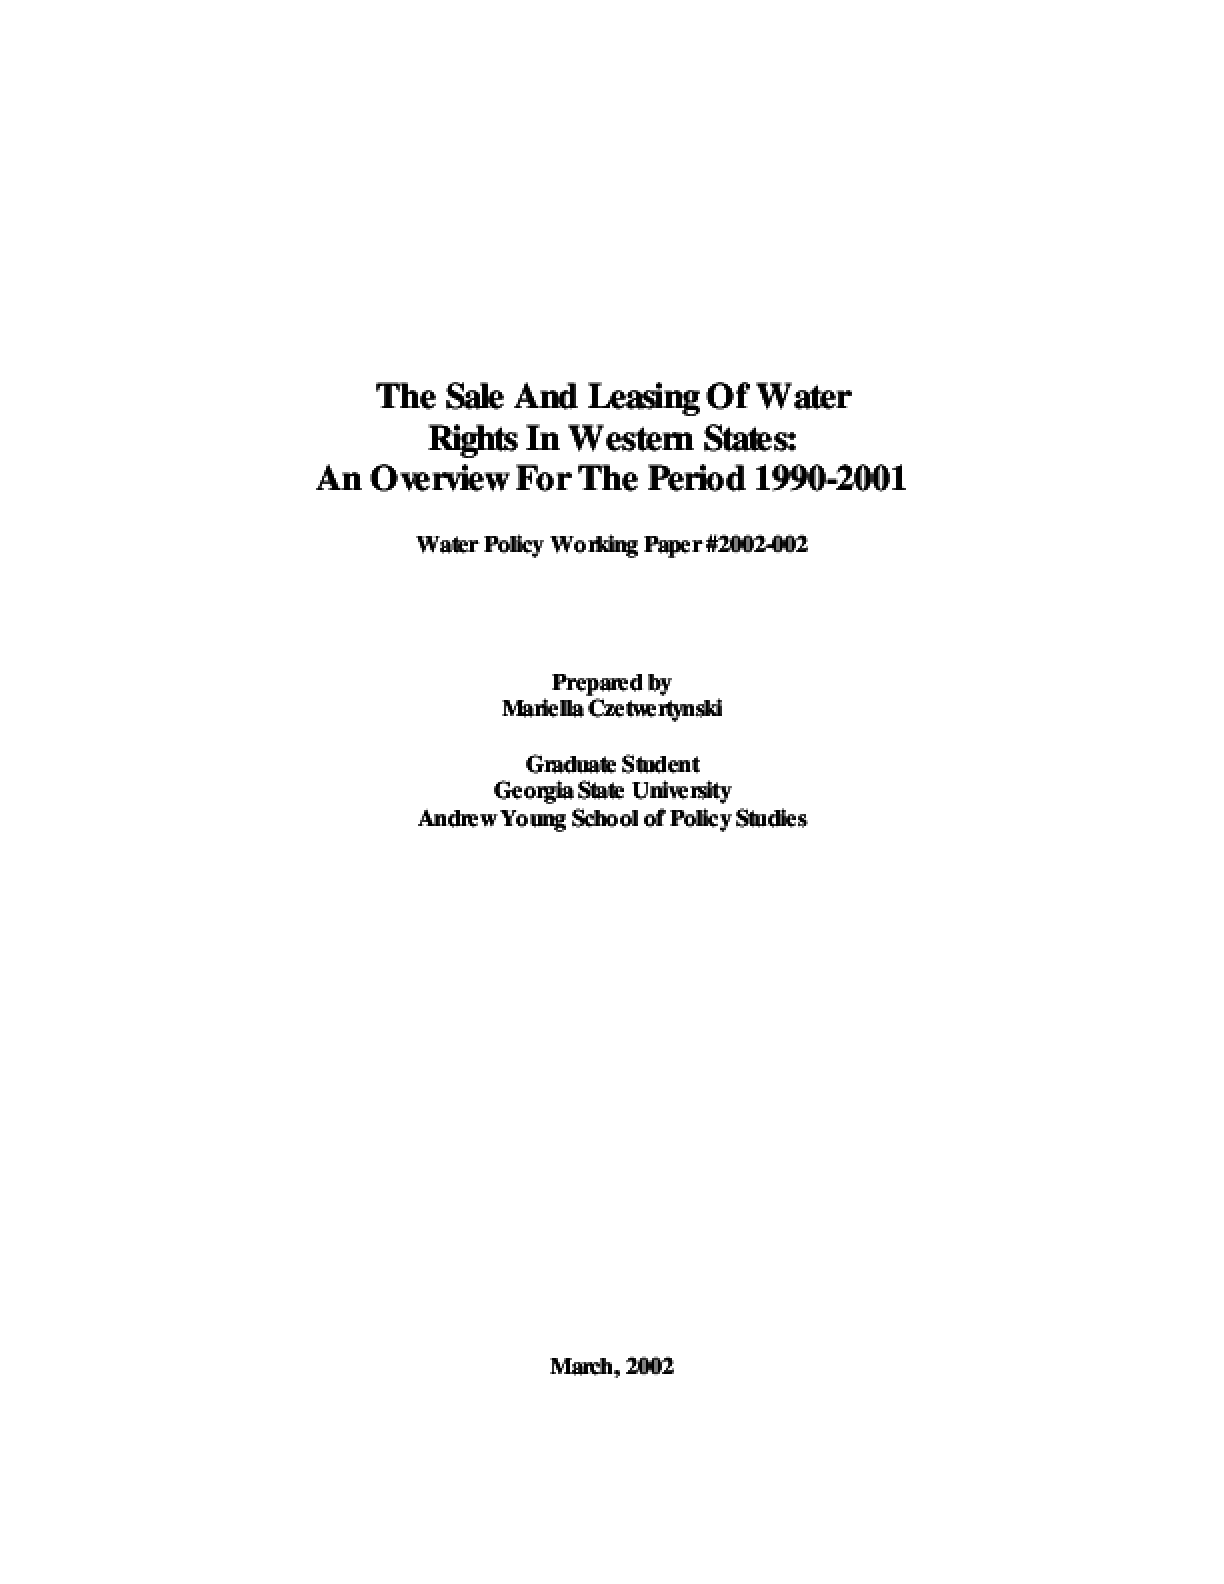 Summary of Water Right Purchases and Leases in the Western States, 1990-2000